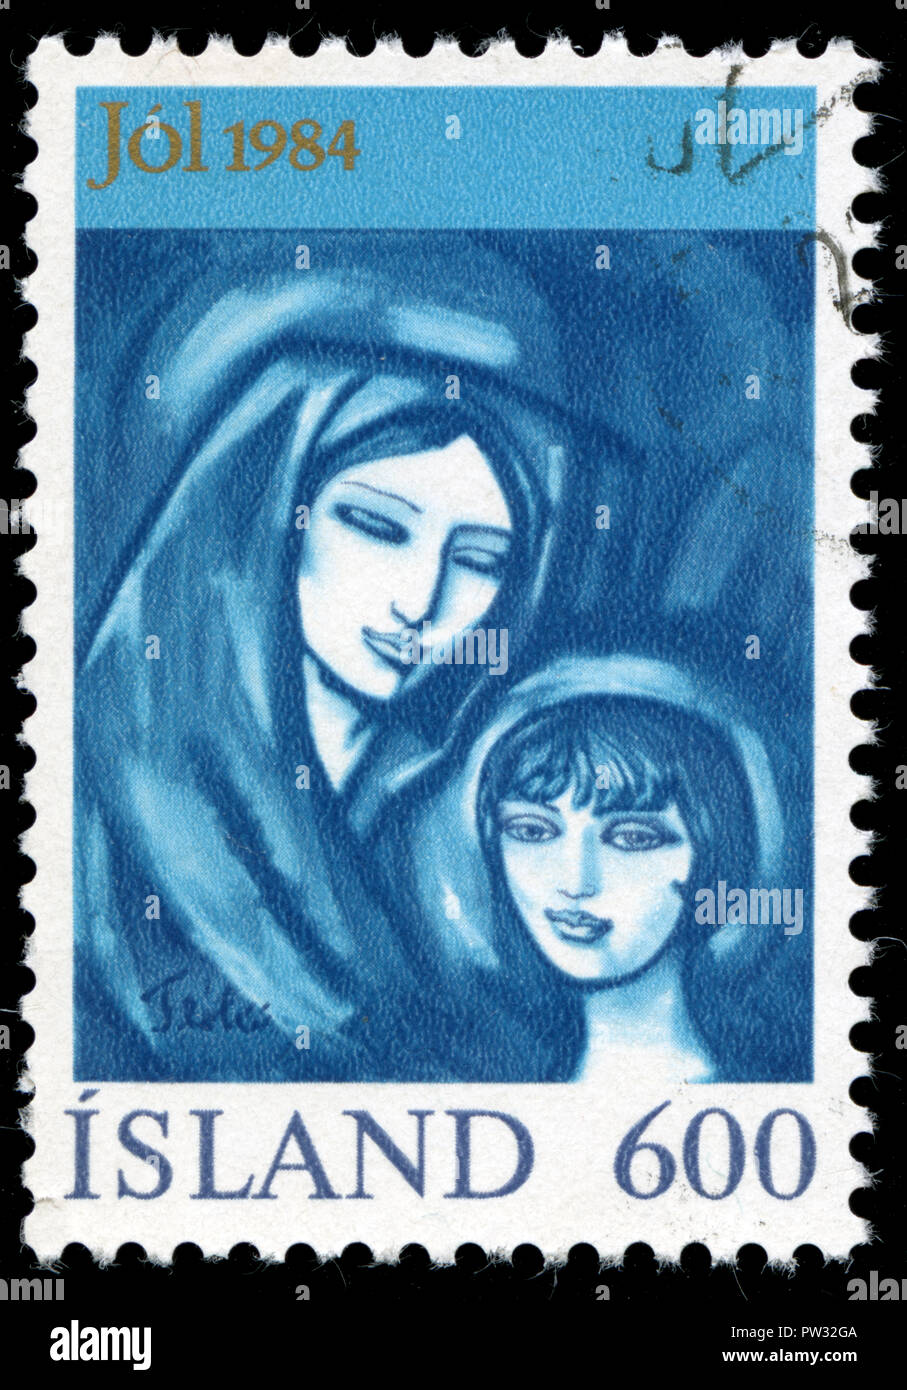 Postmarked stamp from Iceland in the Christmas series issued in 1984 - Stock Image